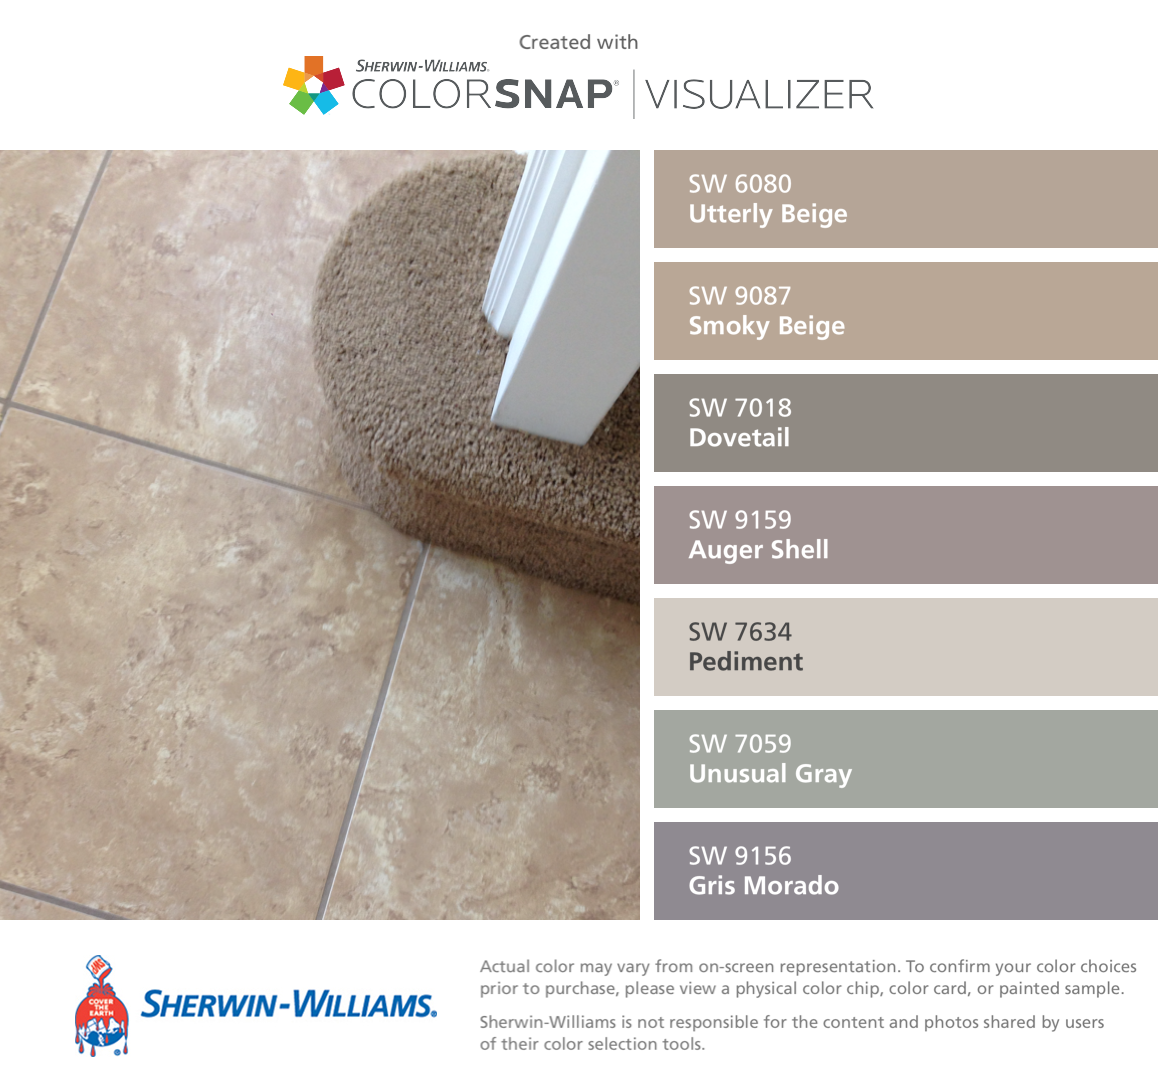 7018 dovetail sherwin williams - I Found These Colors With Colorsnap Visualizer For Iphone By Sherwin Williams Utterly Beige Sw Smoky Beige Sw Dovetail Sw Auger Shell Sw Pediment Sw